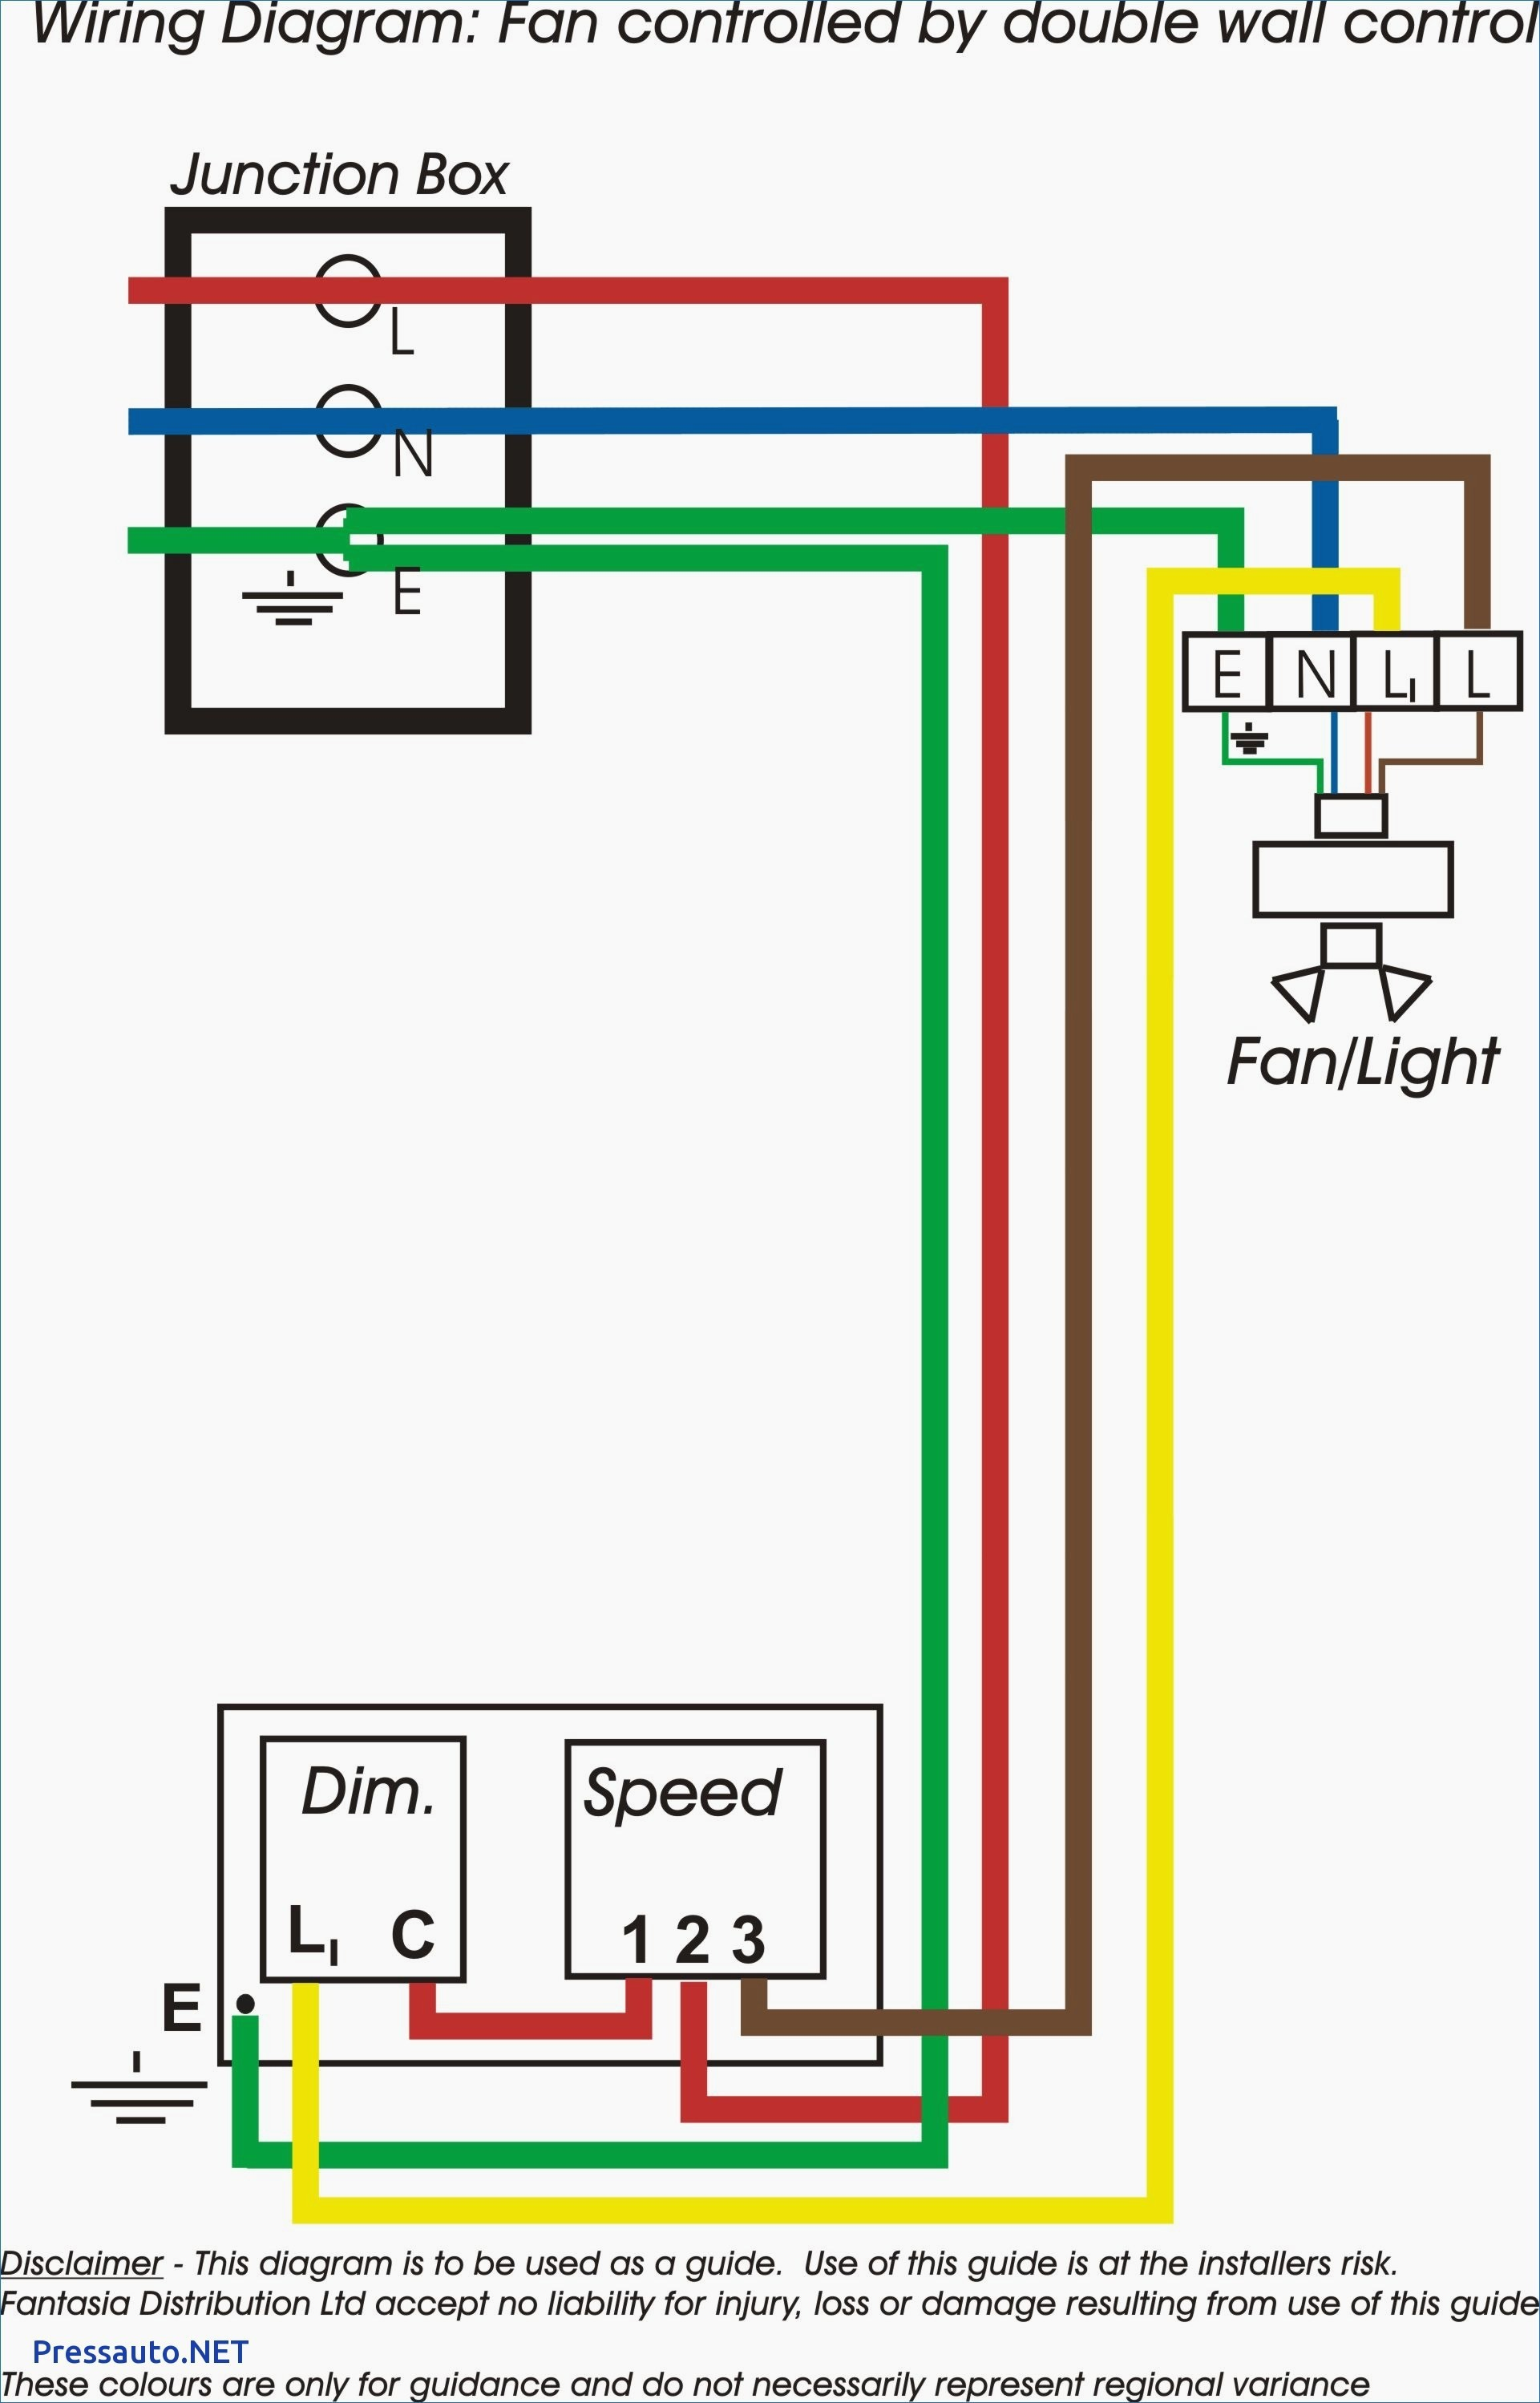 Wiring A Two Way Light Switch Fresh 2 Way Light Switch Wiring Diagram Awesome Best Two